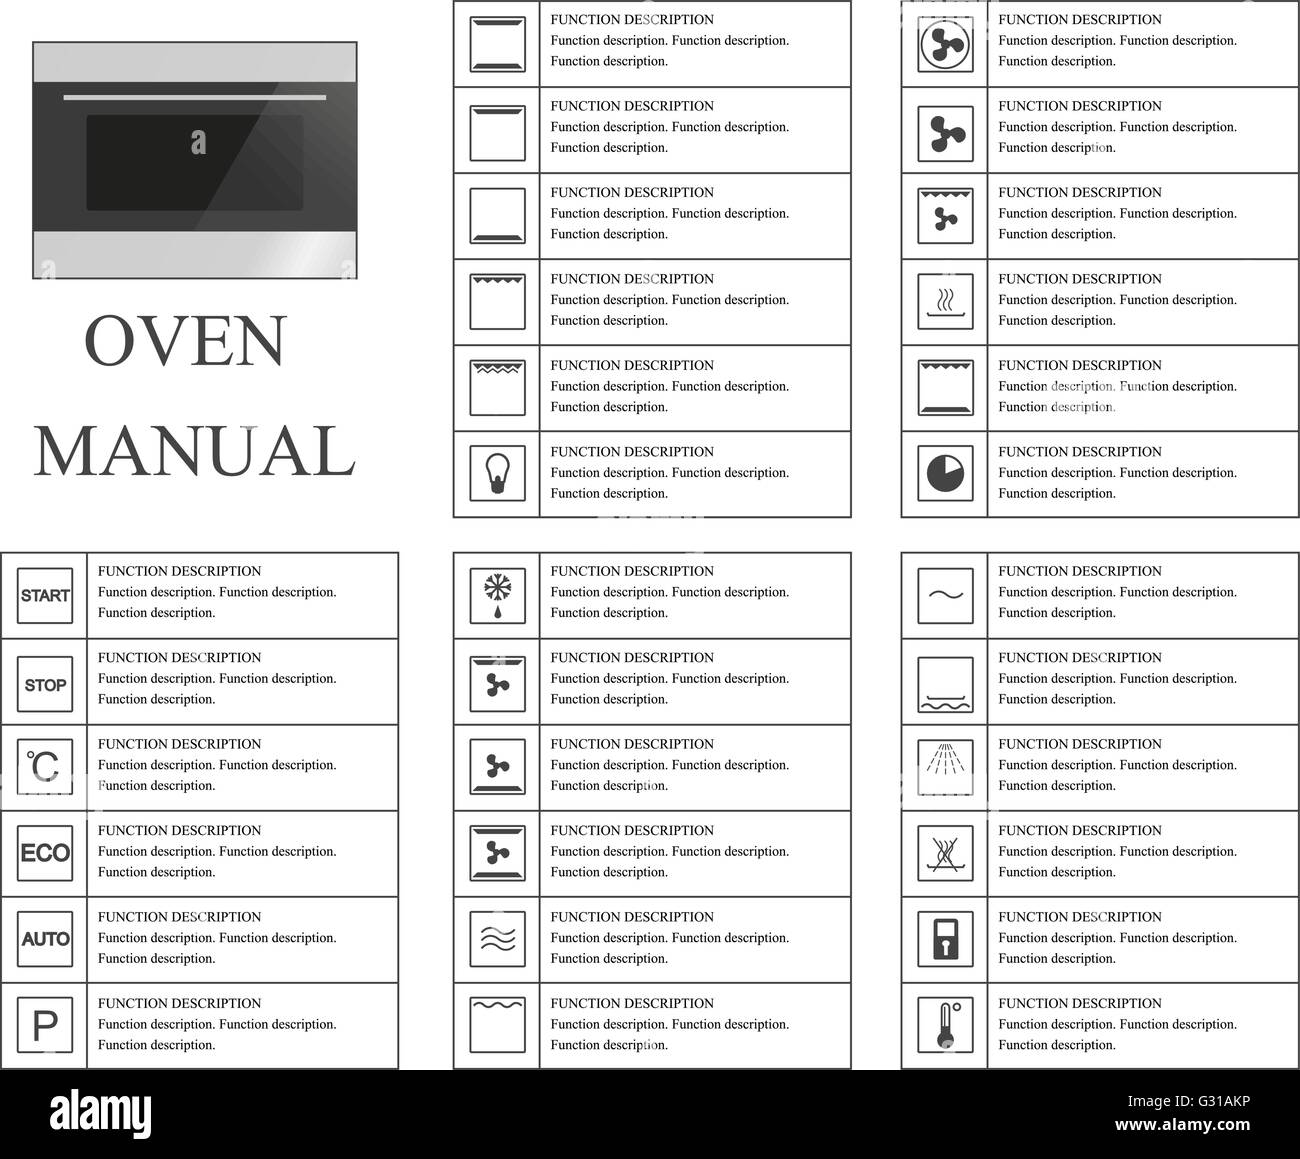 Symbol For Oven Choice Image - meaning of text symbols